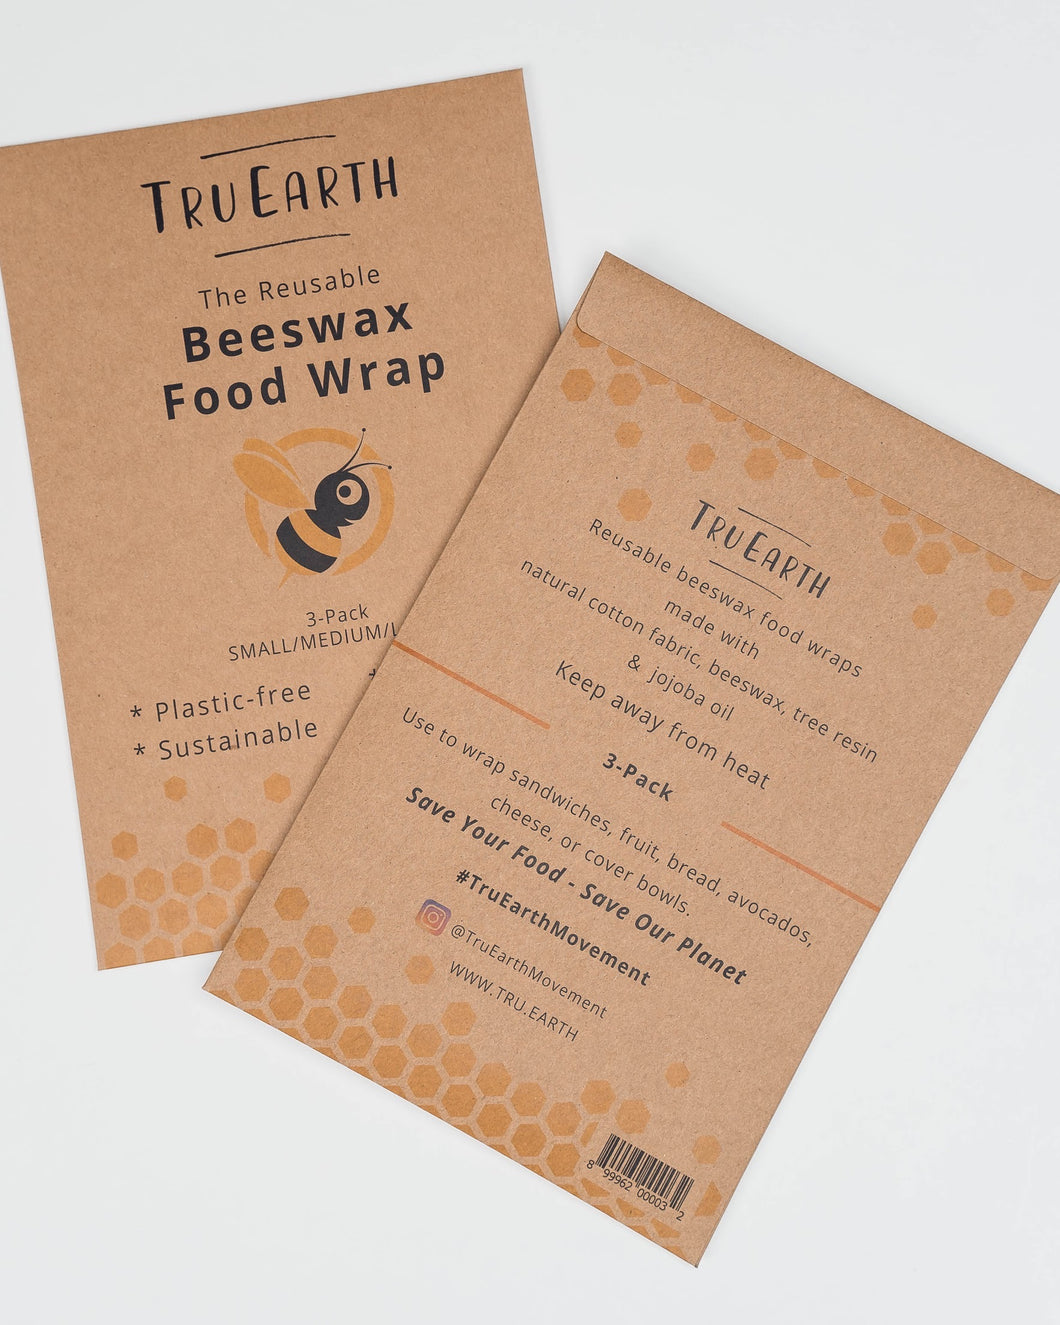 Tru earth Beeswax Food Wrap